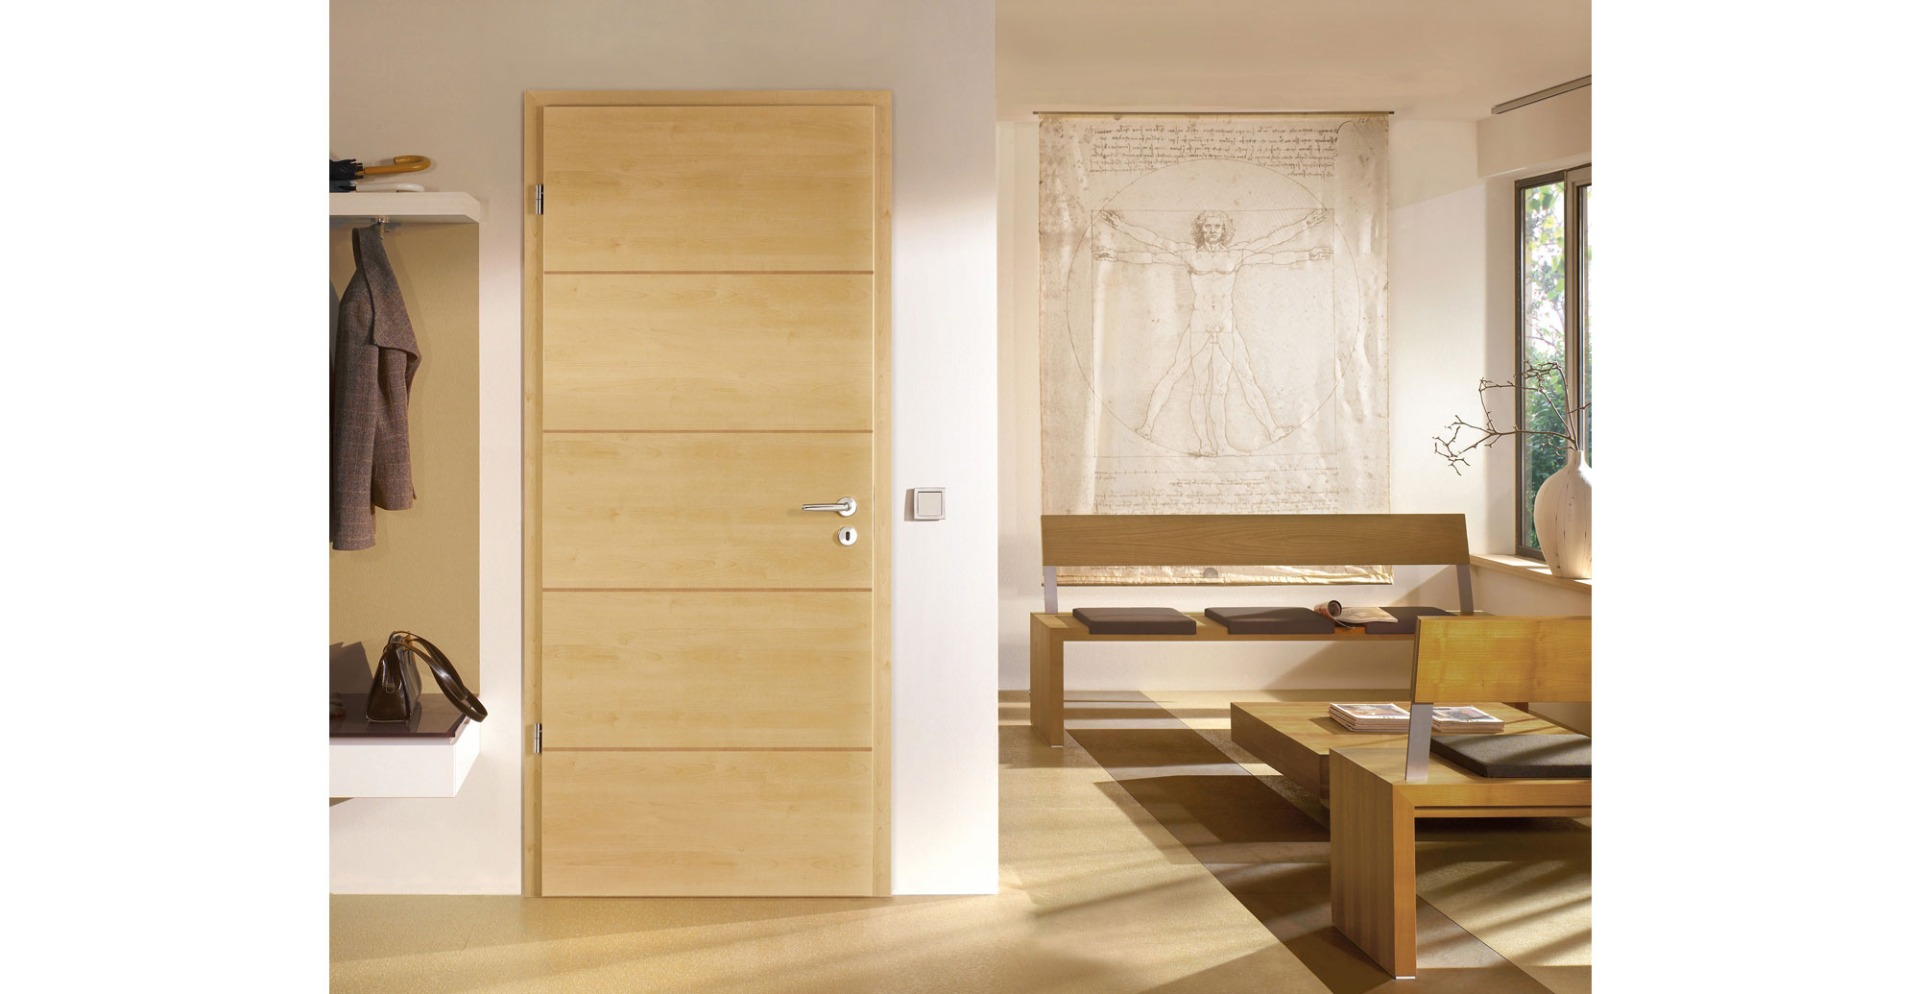 Maple Doors - Bespoke fire doors are a great choice for any home